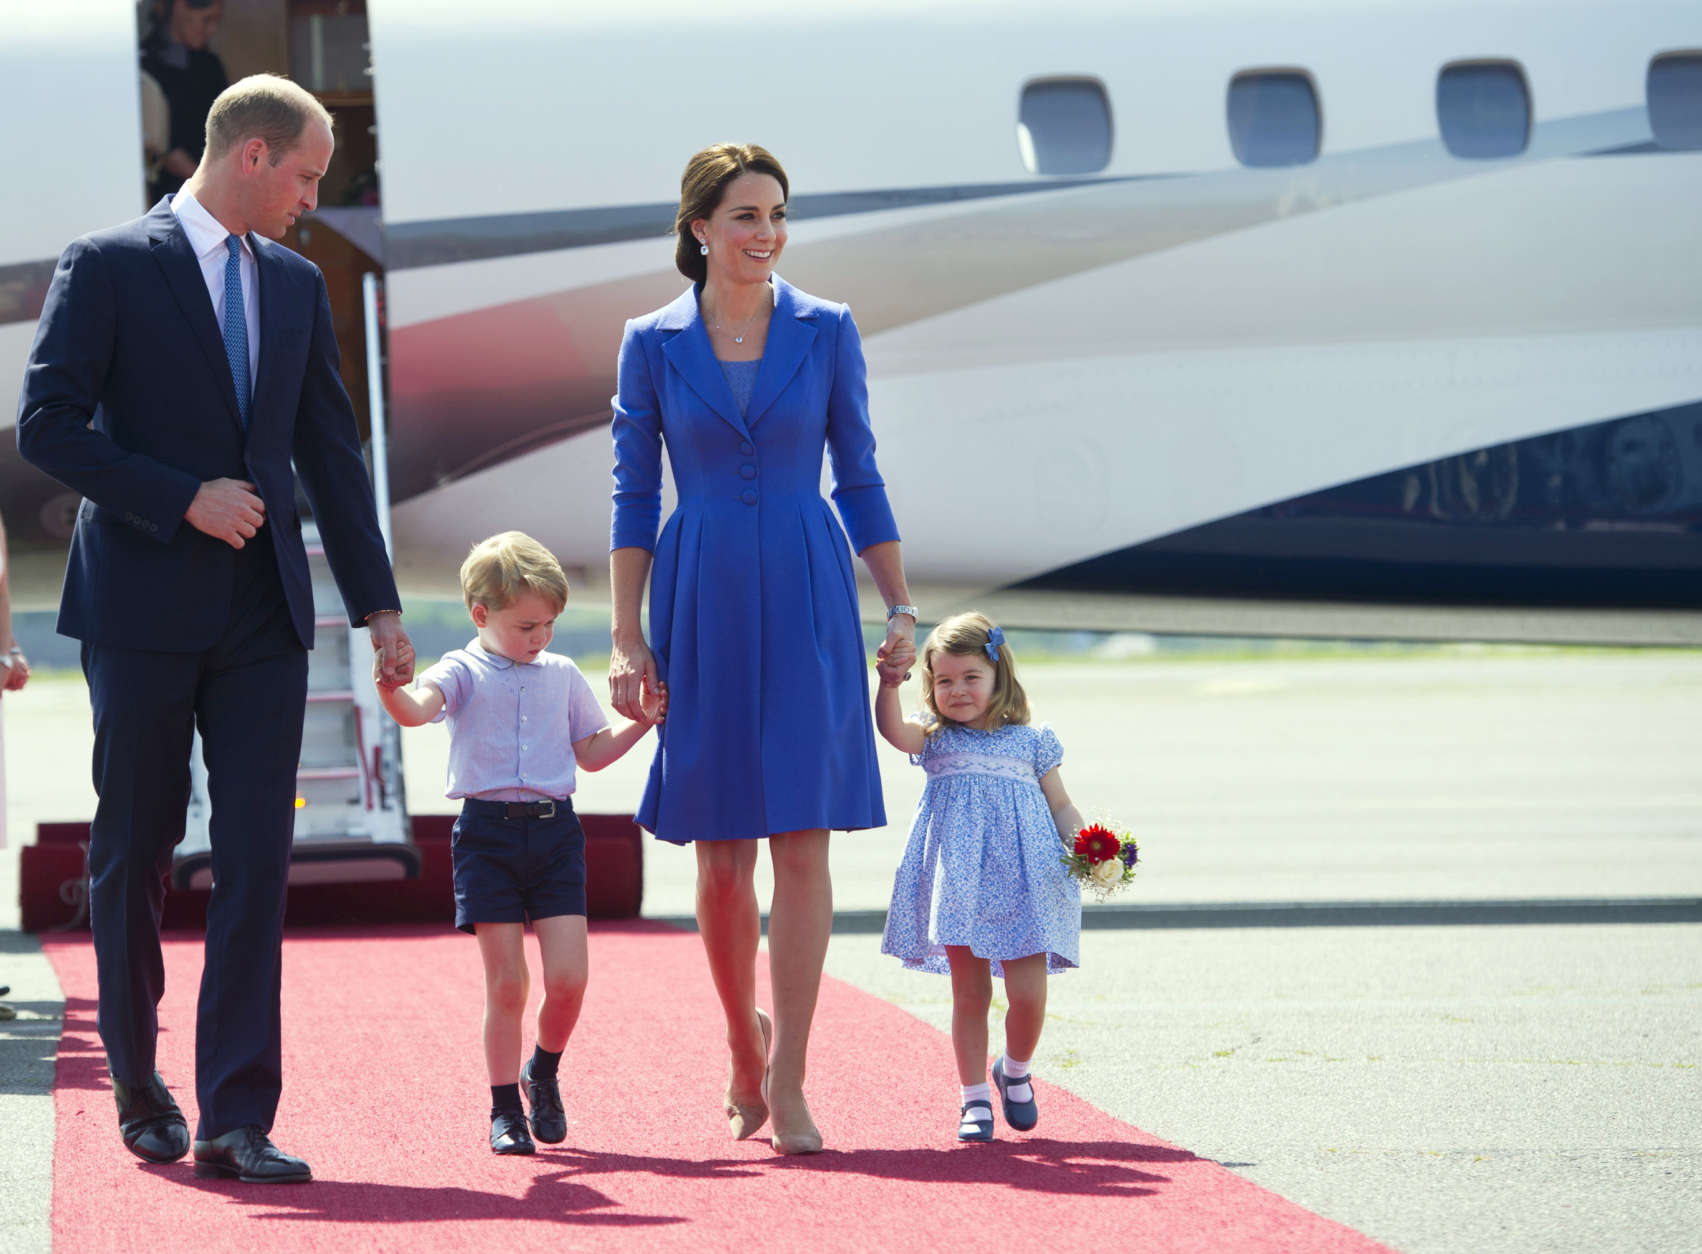 Britain's Prince William, left, Kate, the Duchess of Cambridge and their children Prince George and Princess Charlotte arrive at the airport in Berlin, Wednesday, July 19, 2017. The British royal couple is on a three-day-visit in Germany. (Steffi Loos/Pool Photo via AP)